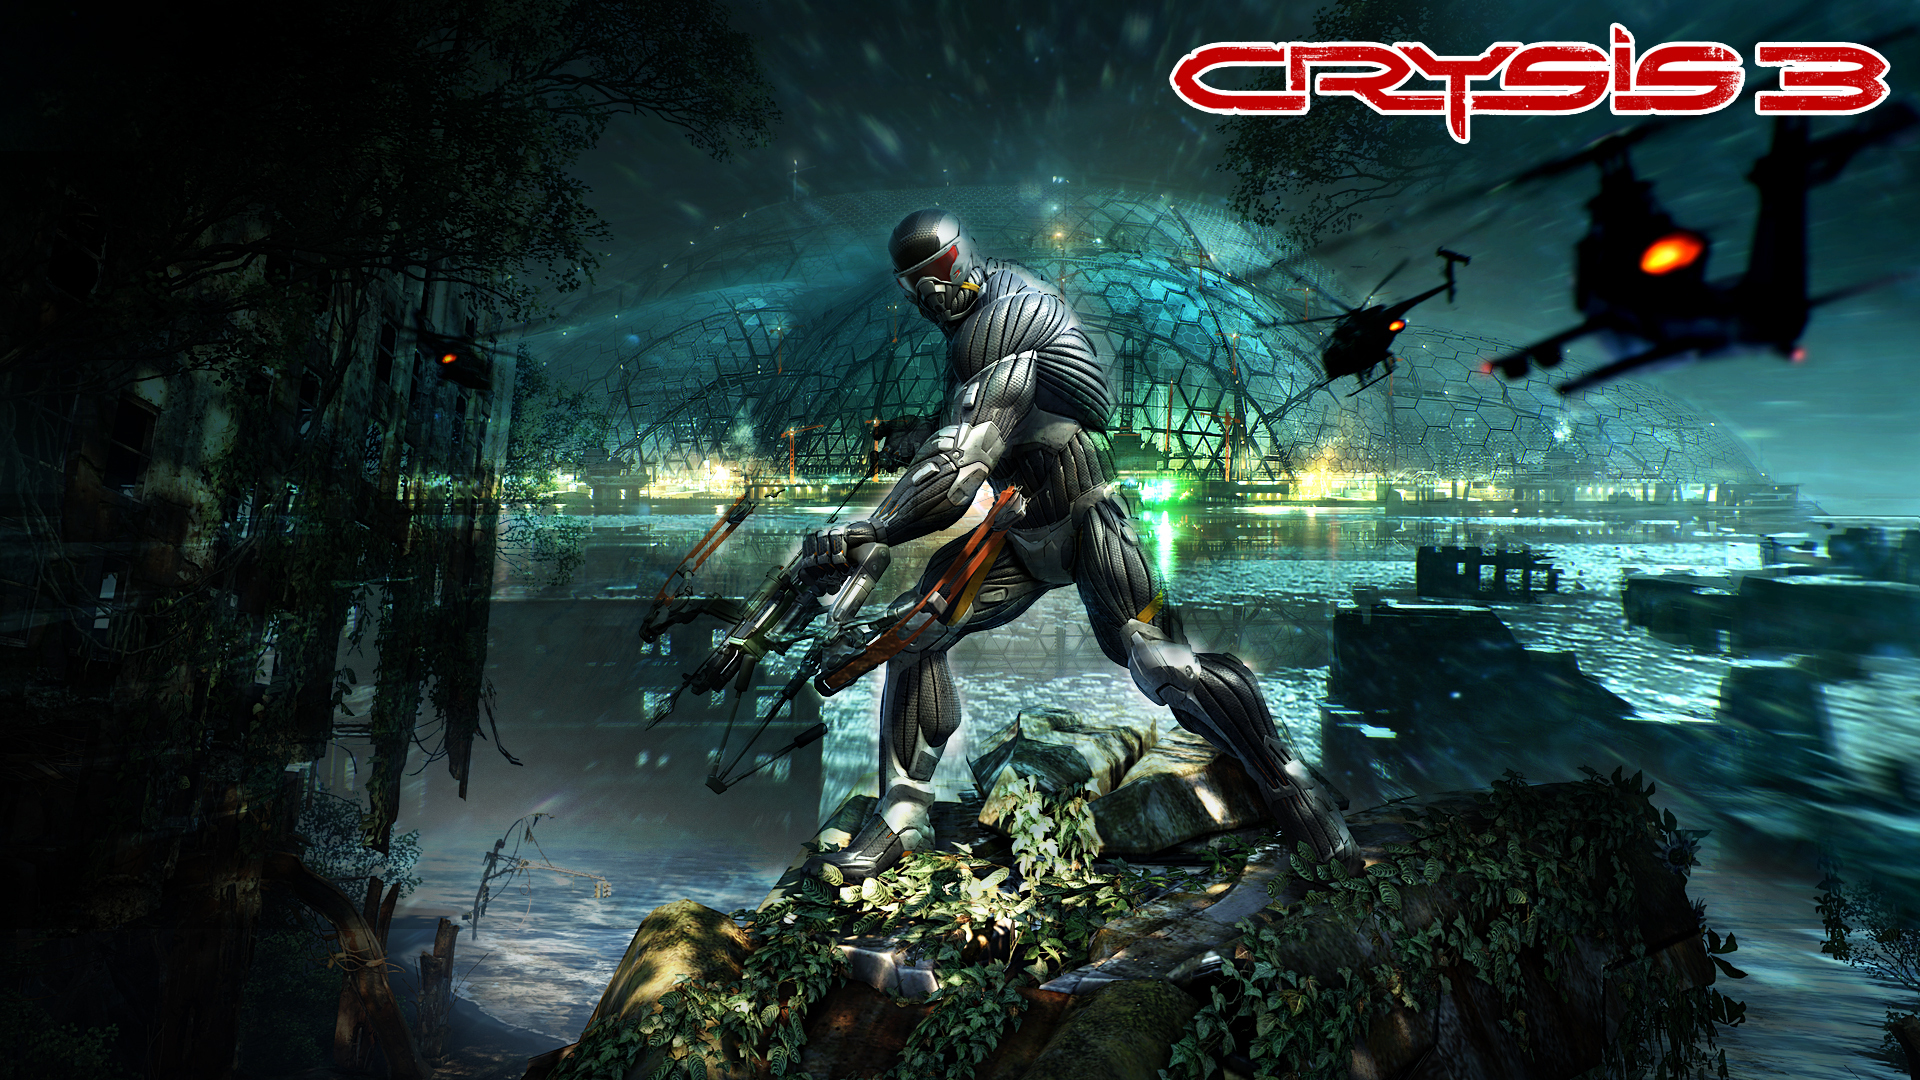 Crysis 3 2013 Video Game 4k Hd Desktop Wallpaper For 4k: Crysis 3 Full HD Wallpaper And Background Image